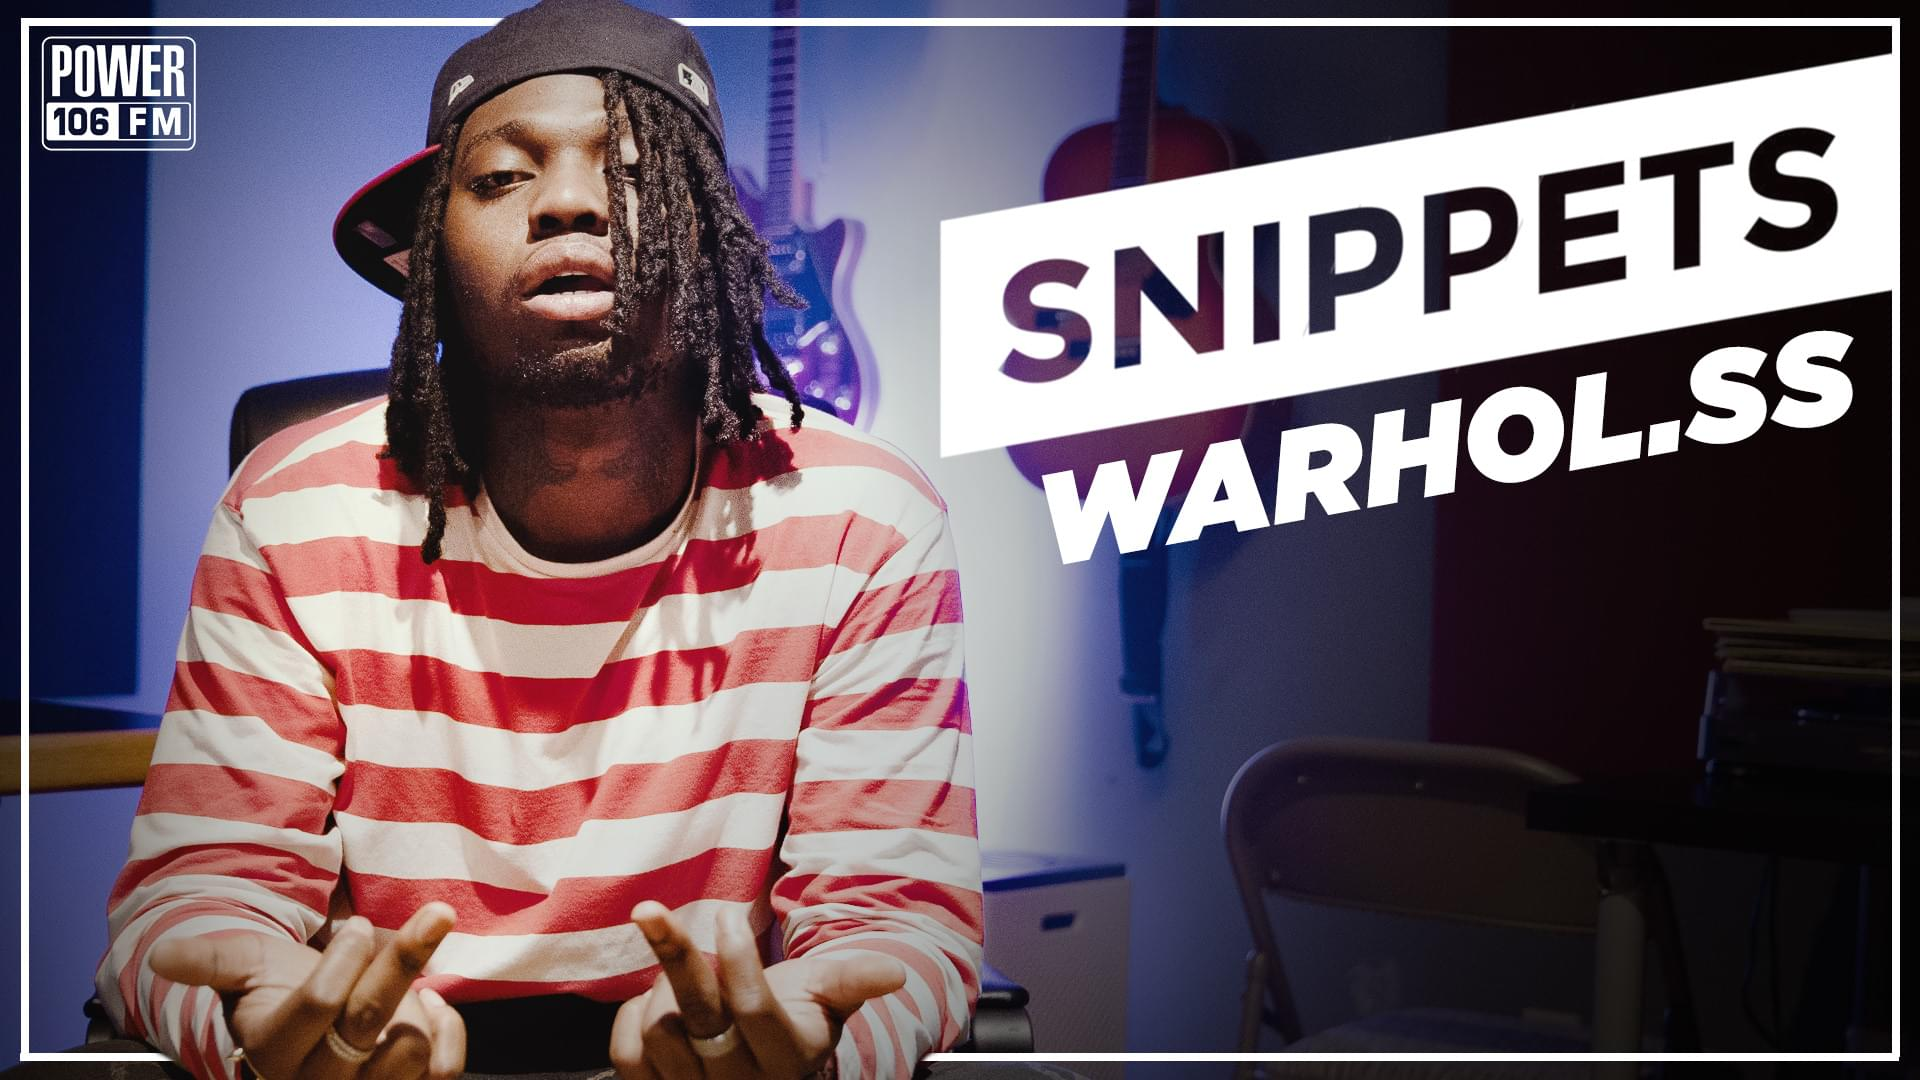 Exclusive in-studio #Snippets of Warhol.SS' new album 'Chest Pains' [WATCH]